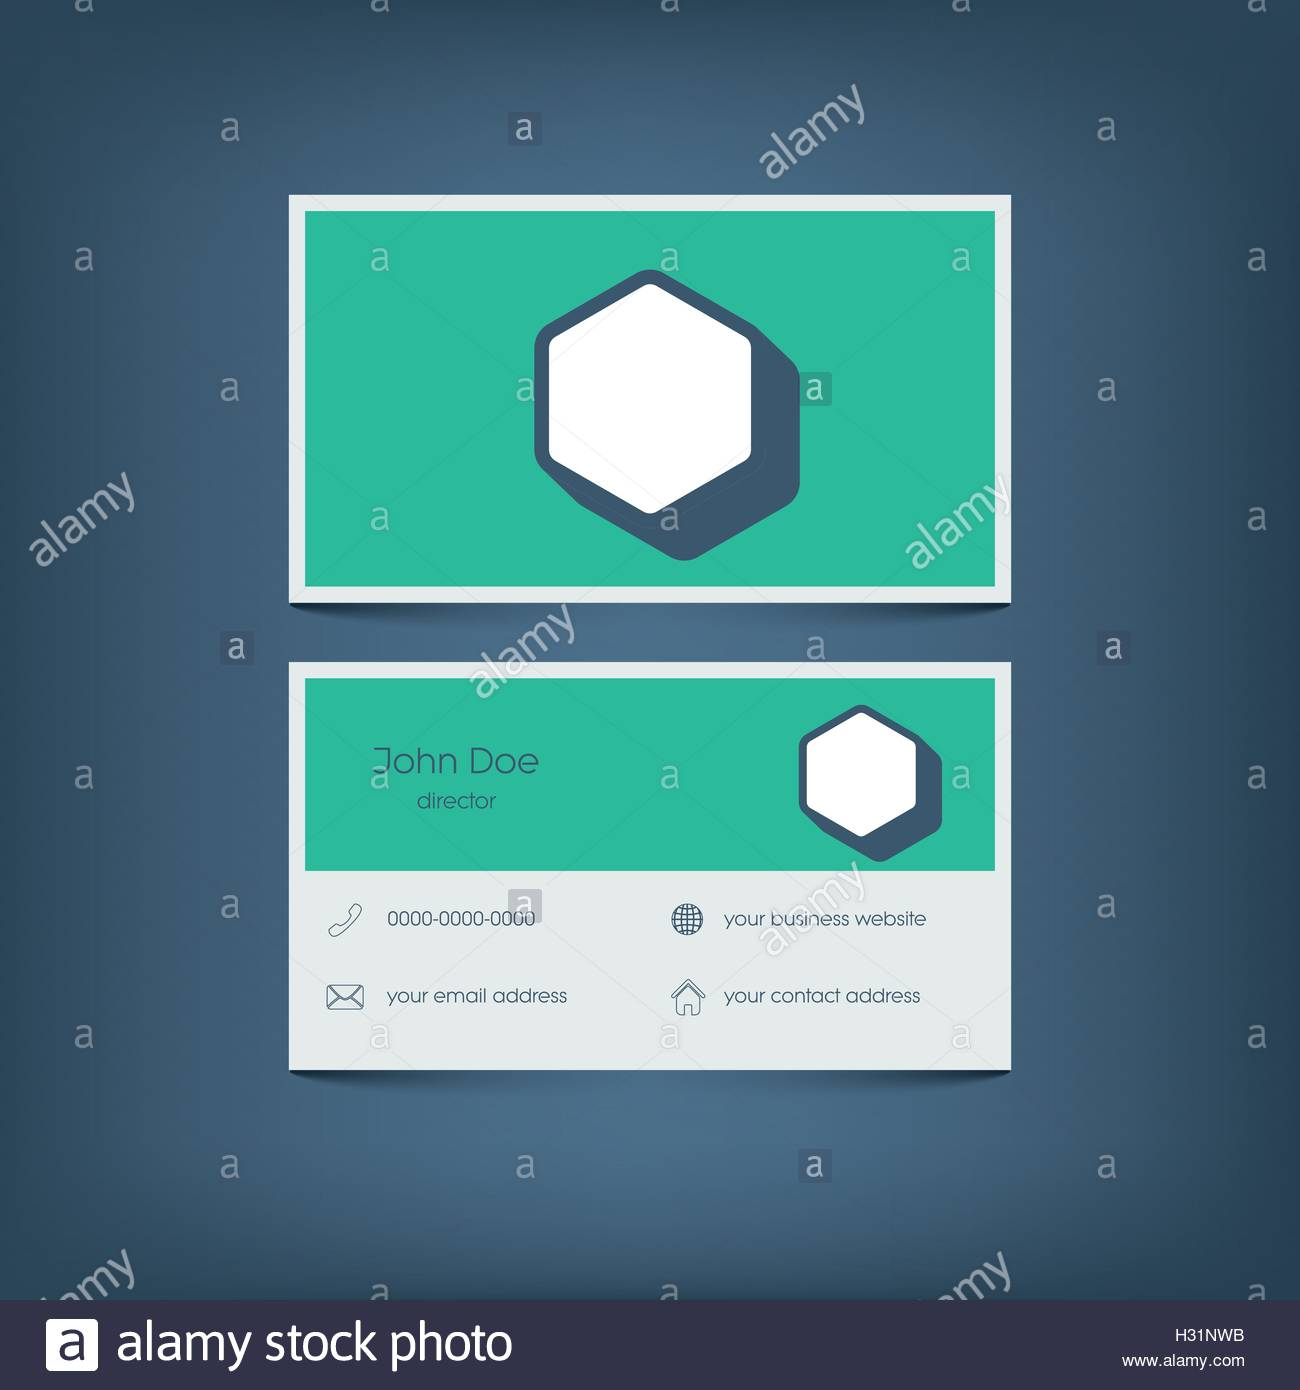 Modern Flat Design Business Card Template Graphic User Interface - Website business card template